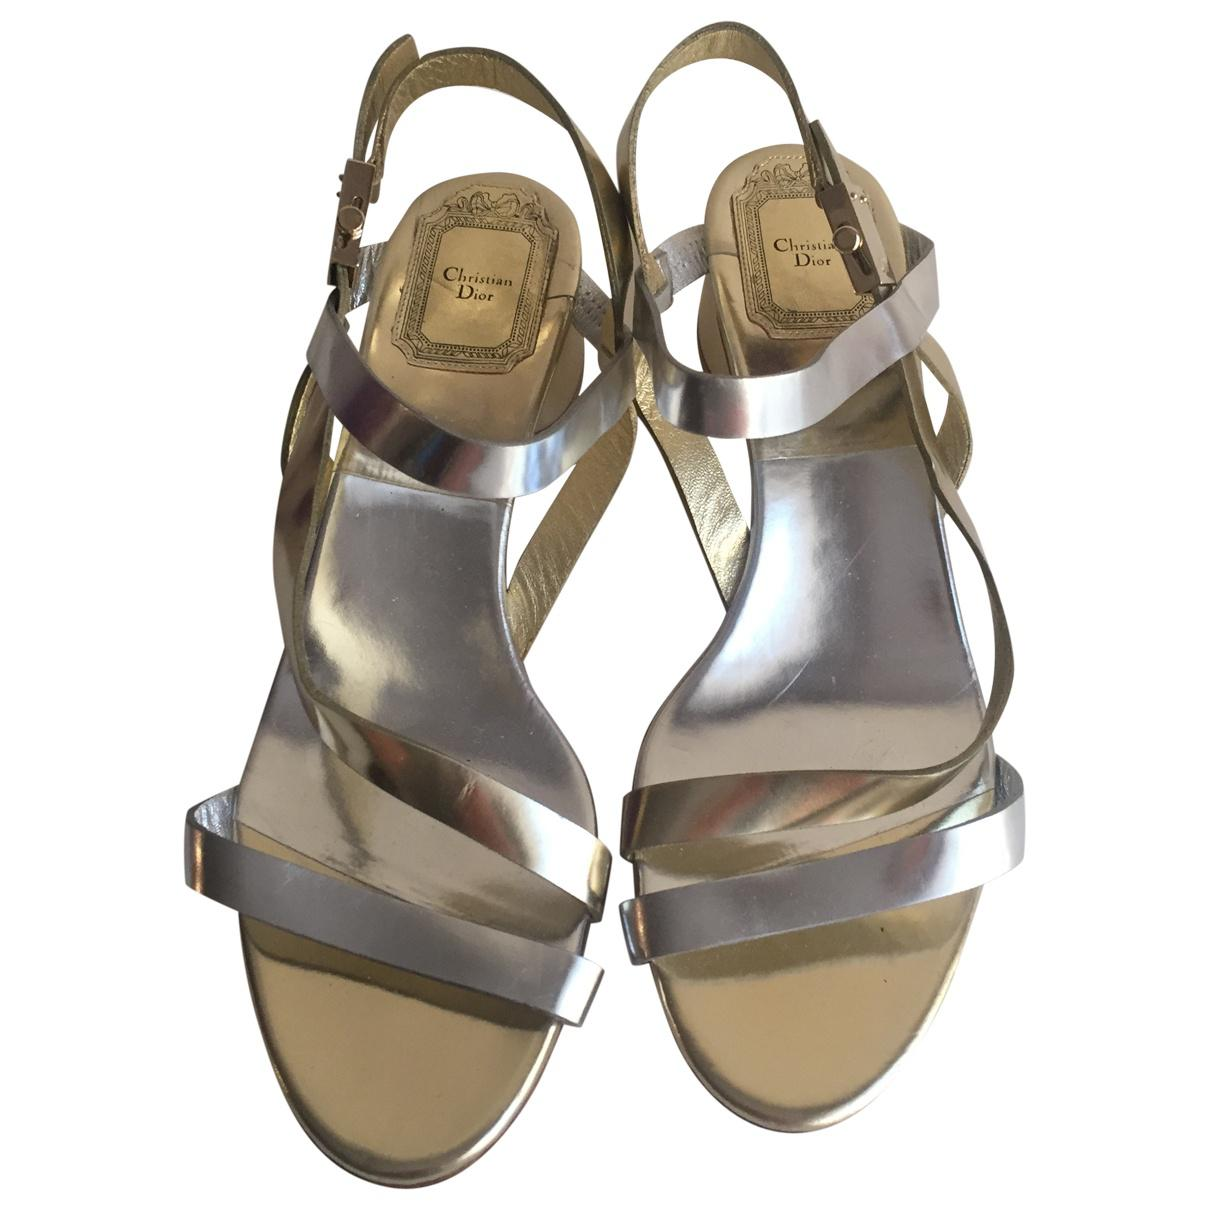 a3be0476173 Dior. Women s Multicolour Leather Sandals